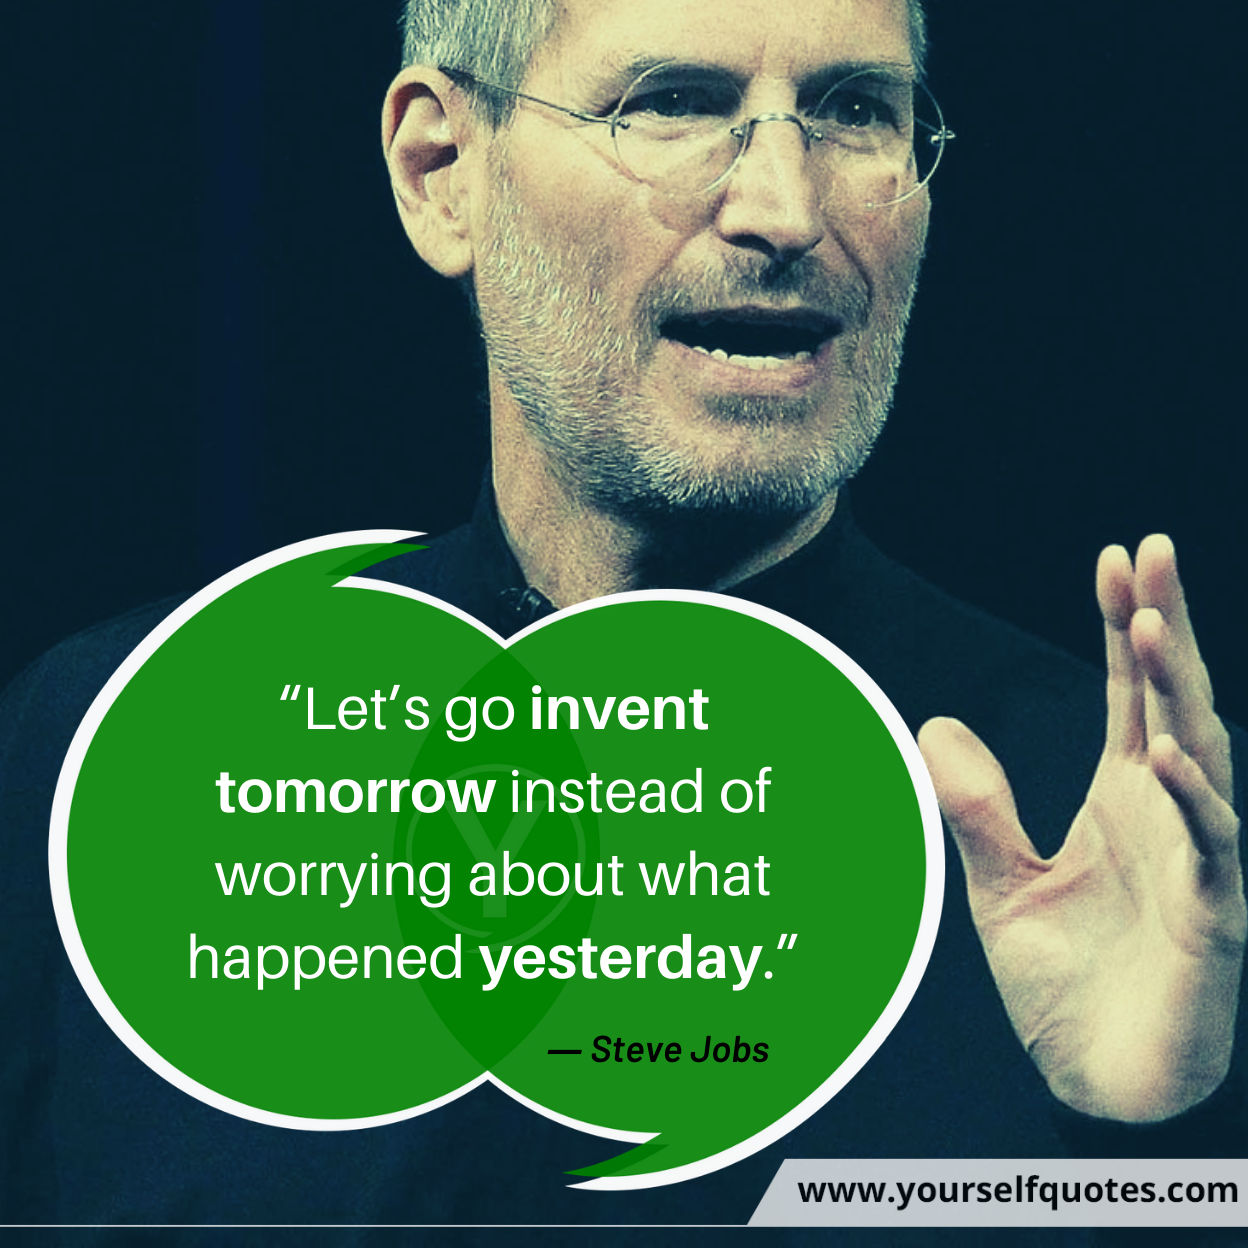 Steve Jobs Images With Quotes